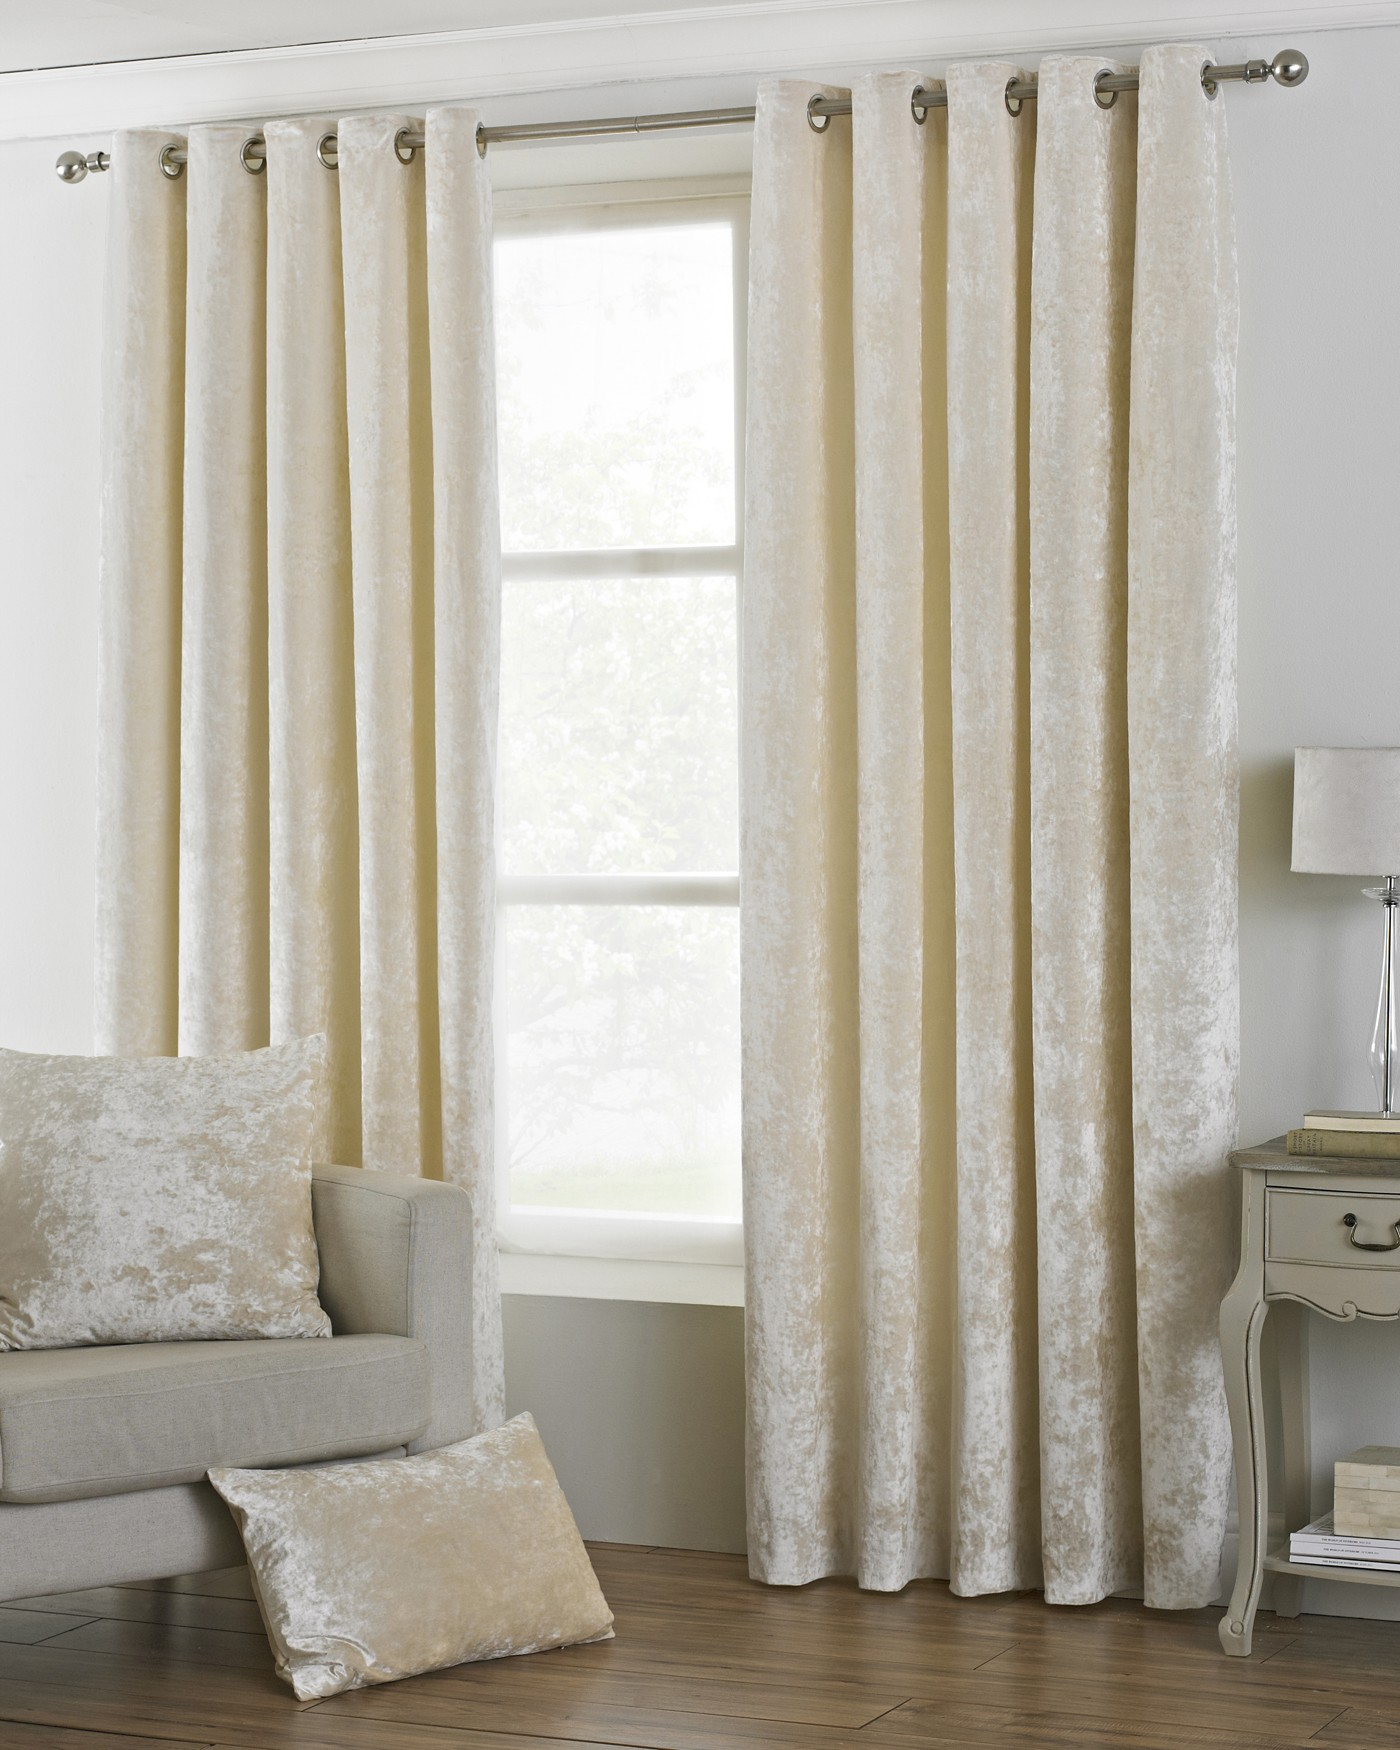 The Home Furnishings Company Verona  Ivory Velvet Curtains/Bedding/Furnishings